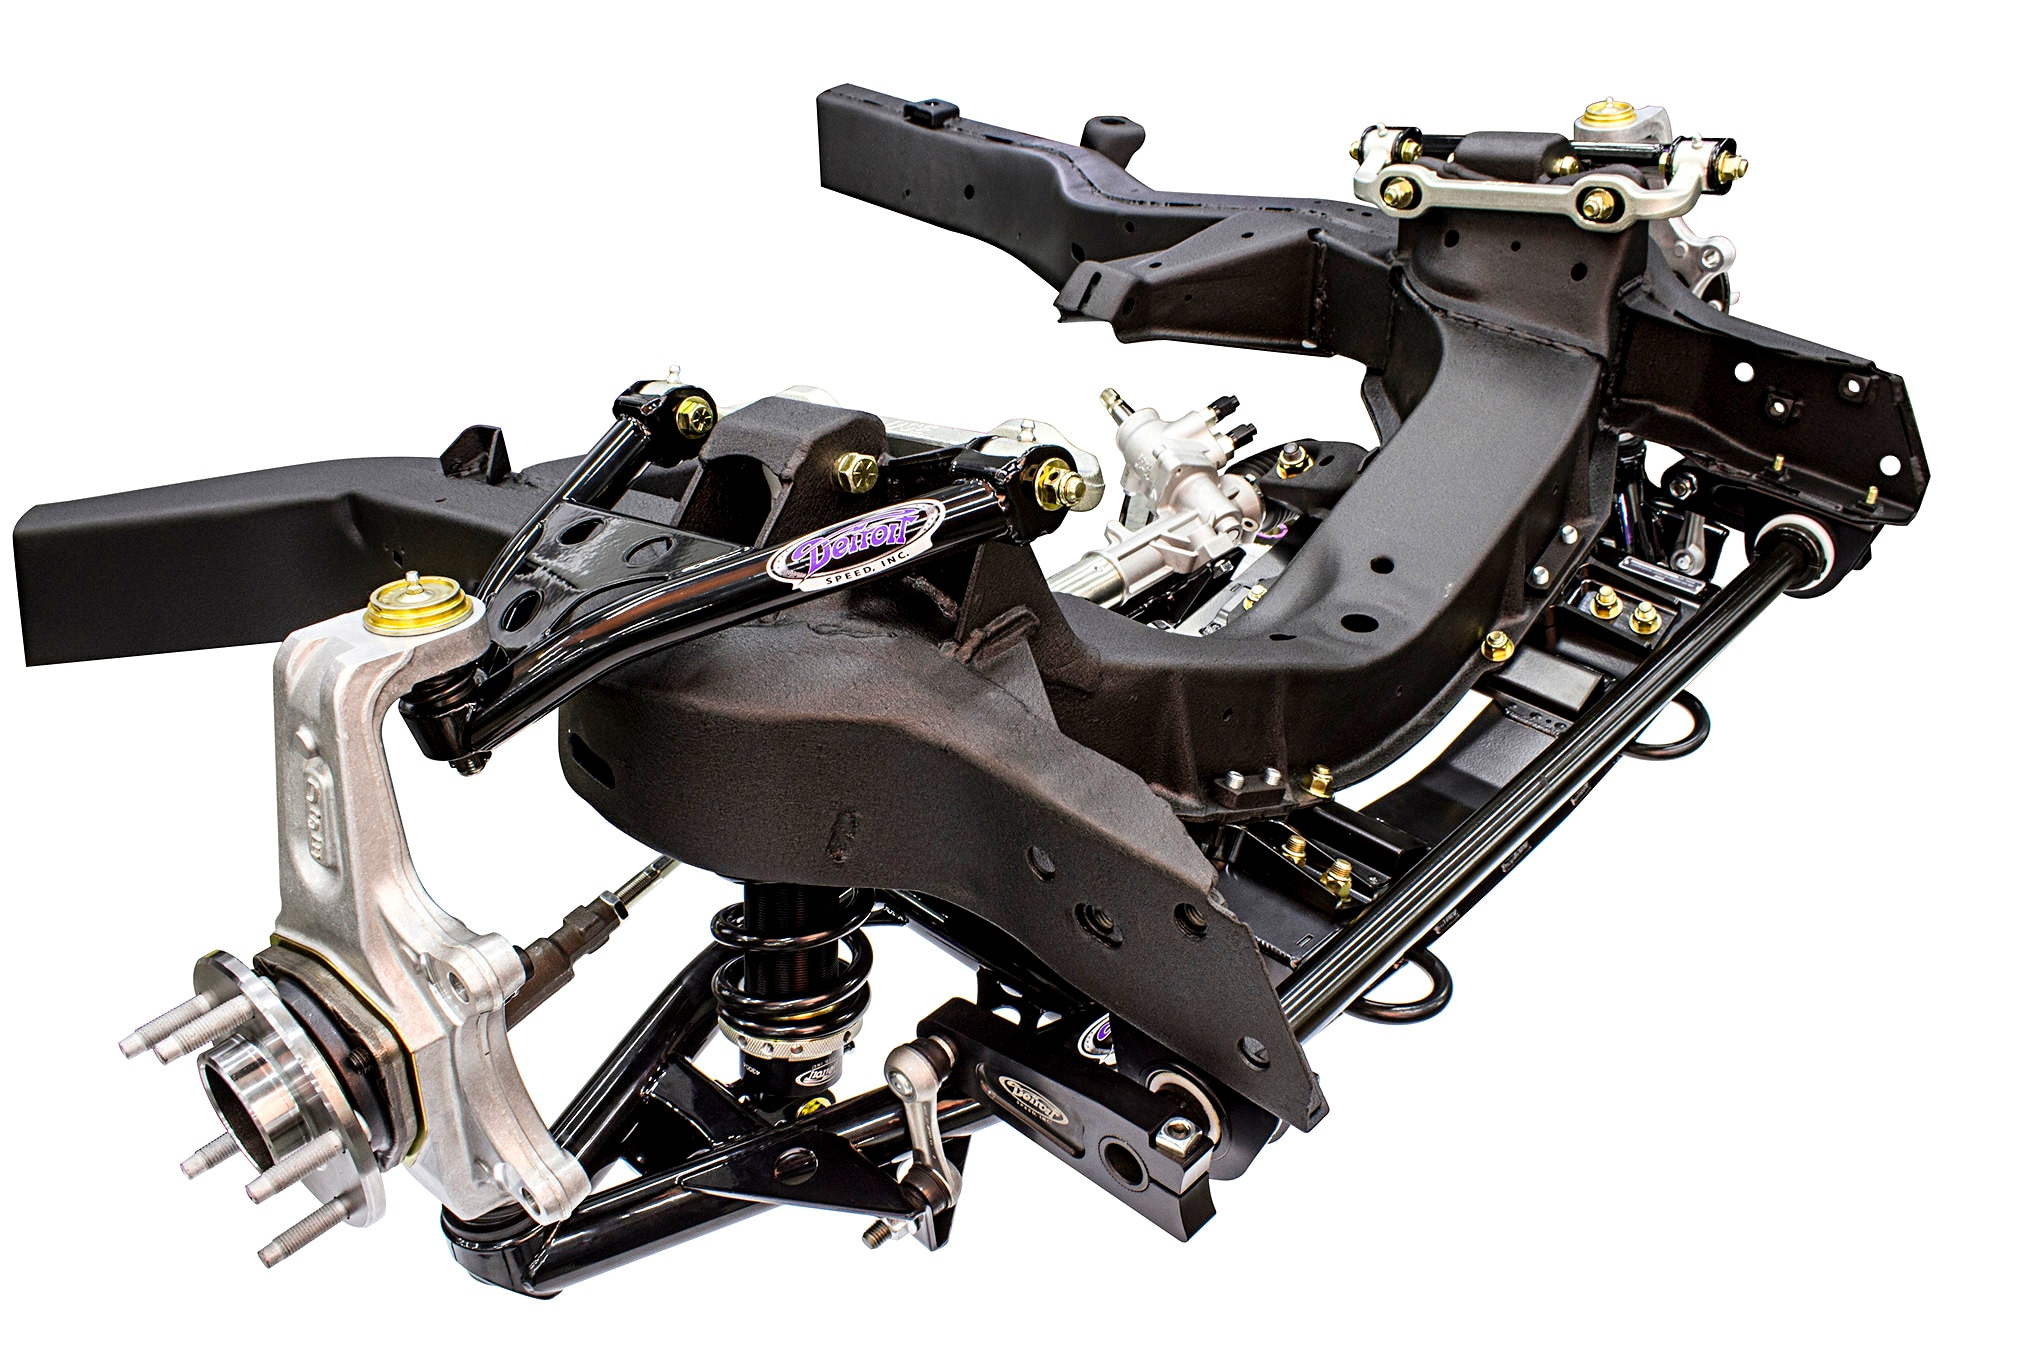 001 Detroit Speed Corvette Speedray Subframe